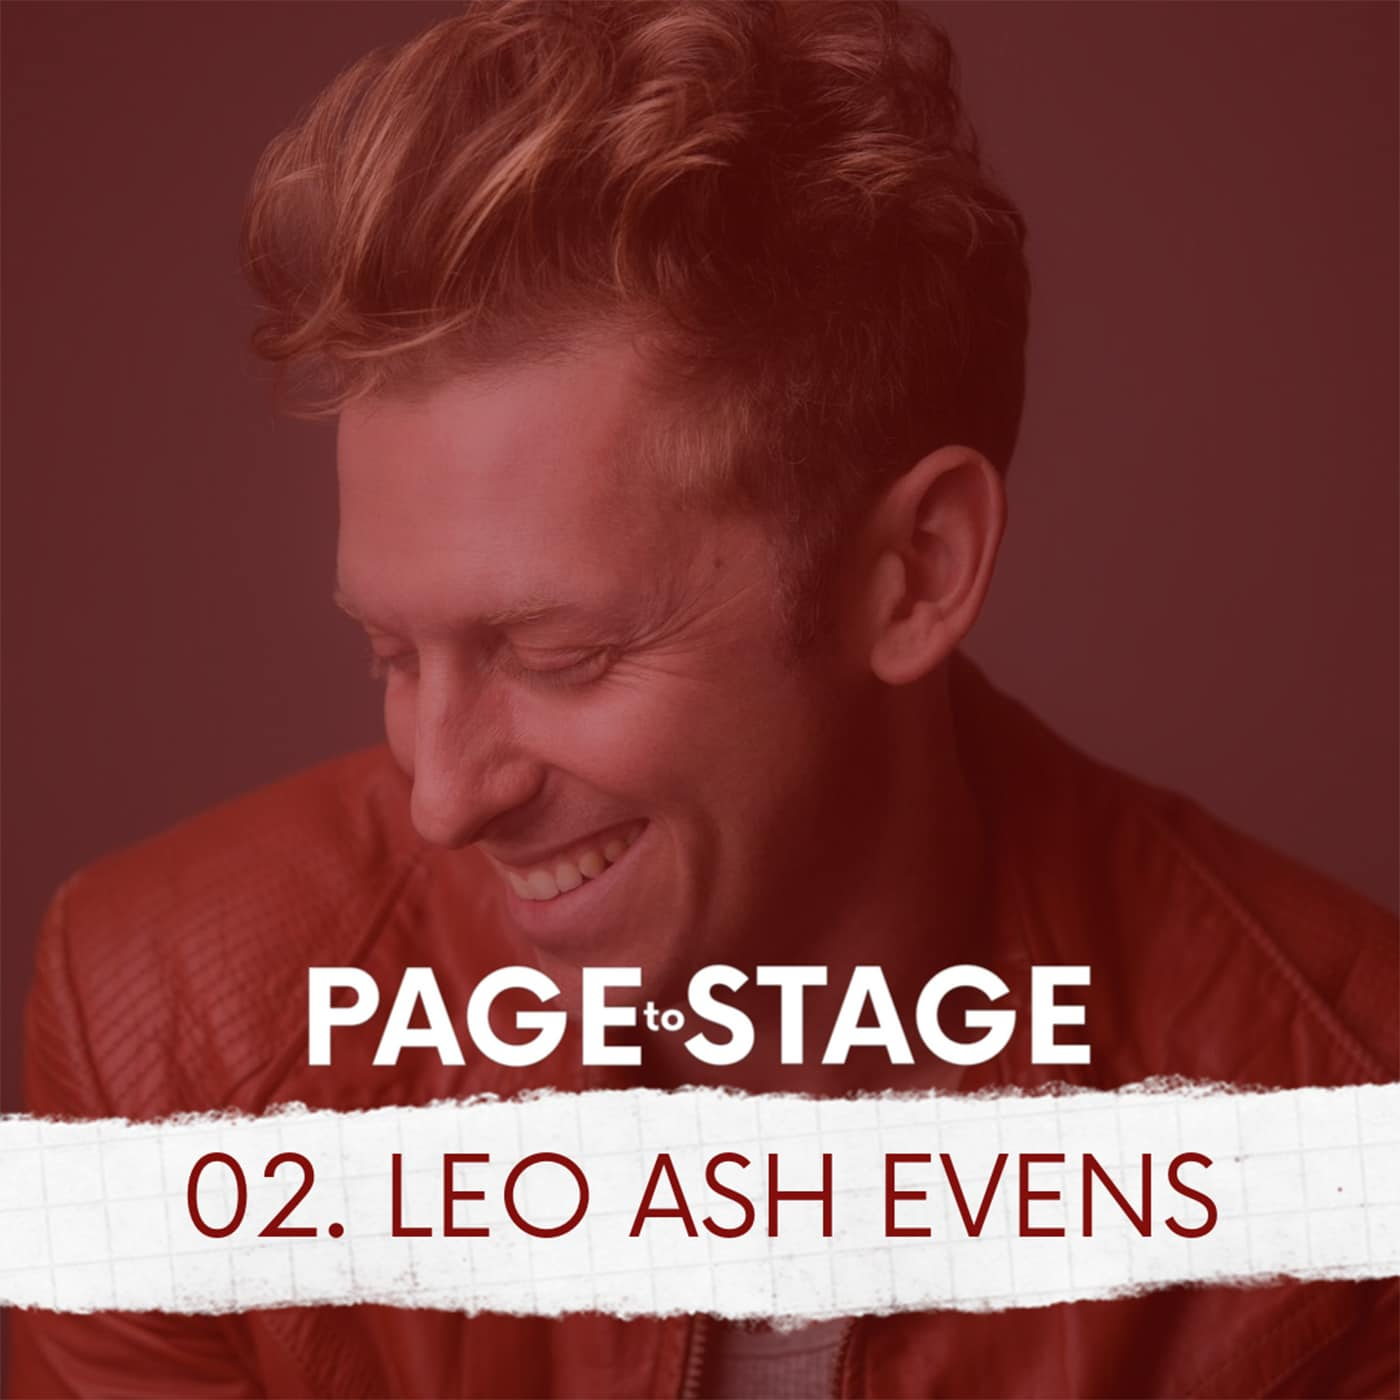 Page to Stage Ep 2 Leo Ash Evens